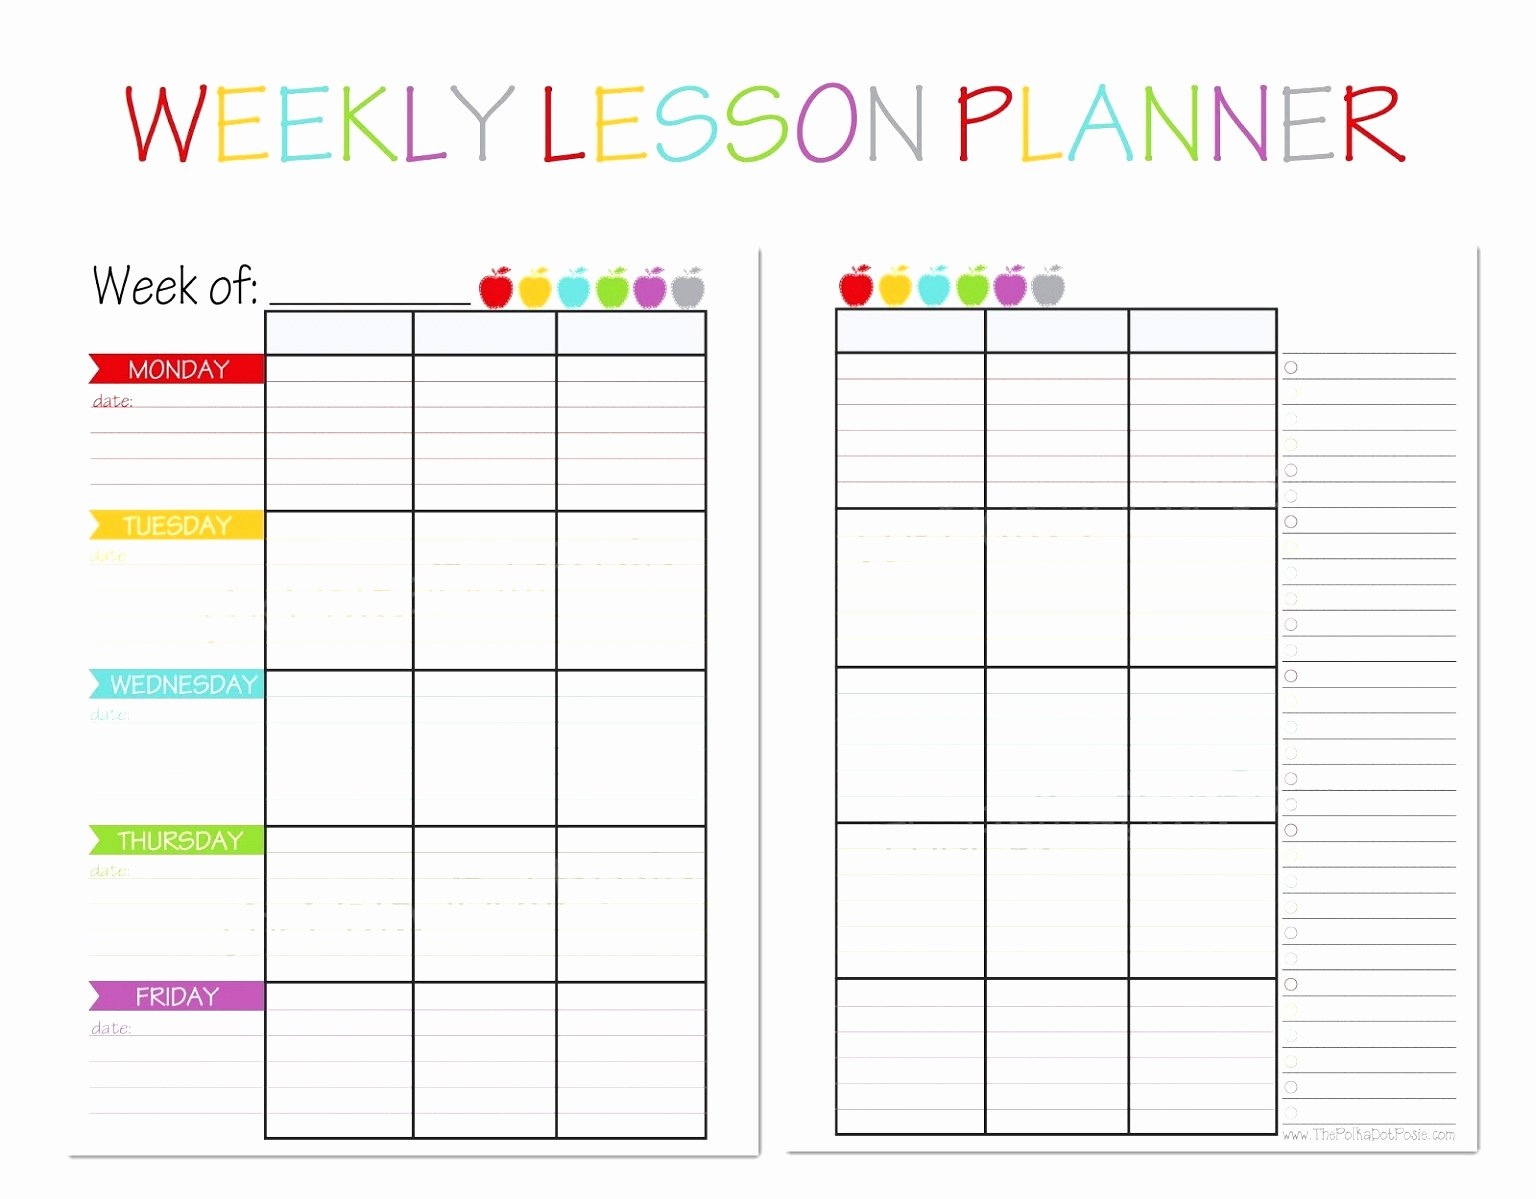 Weekly Lesson Plan Template Elementary Elegant 10 Weekly Lesson Plan Templates for Elementary Teachers